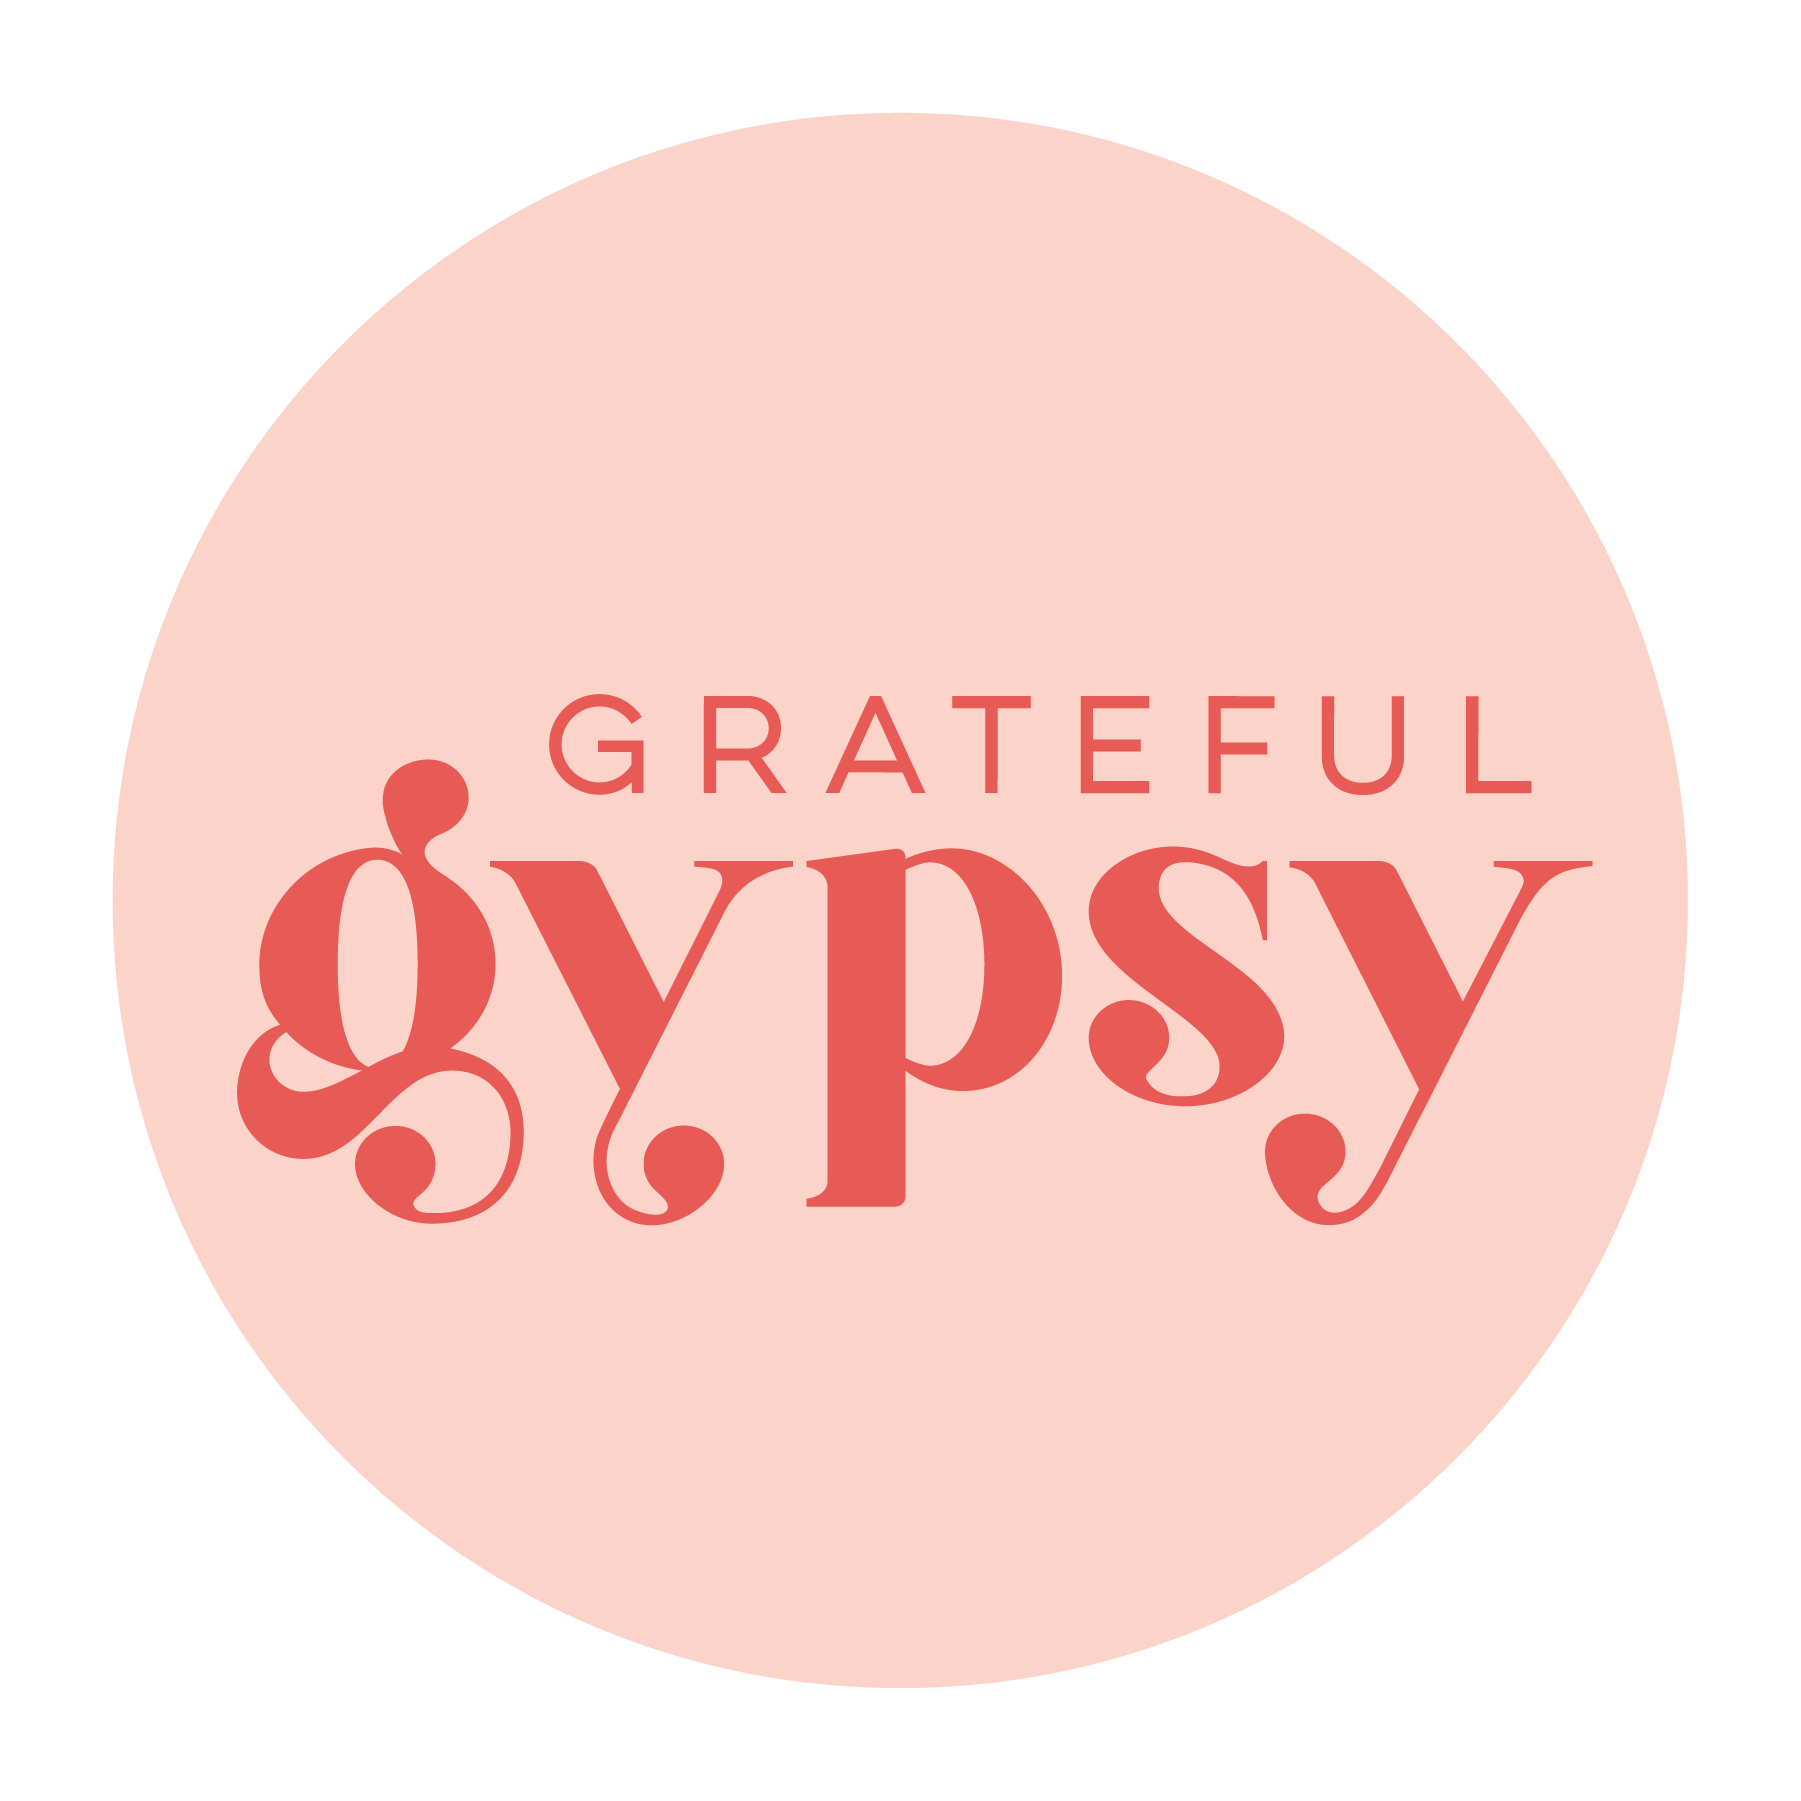 Grateful Gypsy Logo     Free-spirited, Eclectic, Handmade apparel and jewelry with bohemian flair